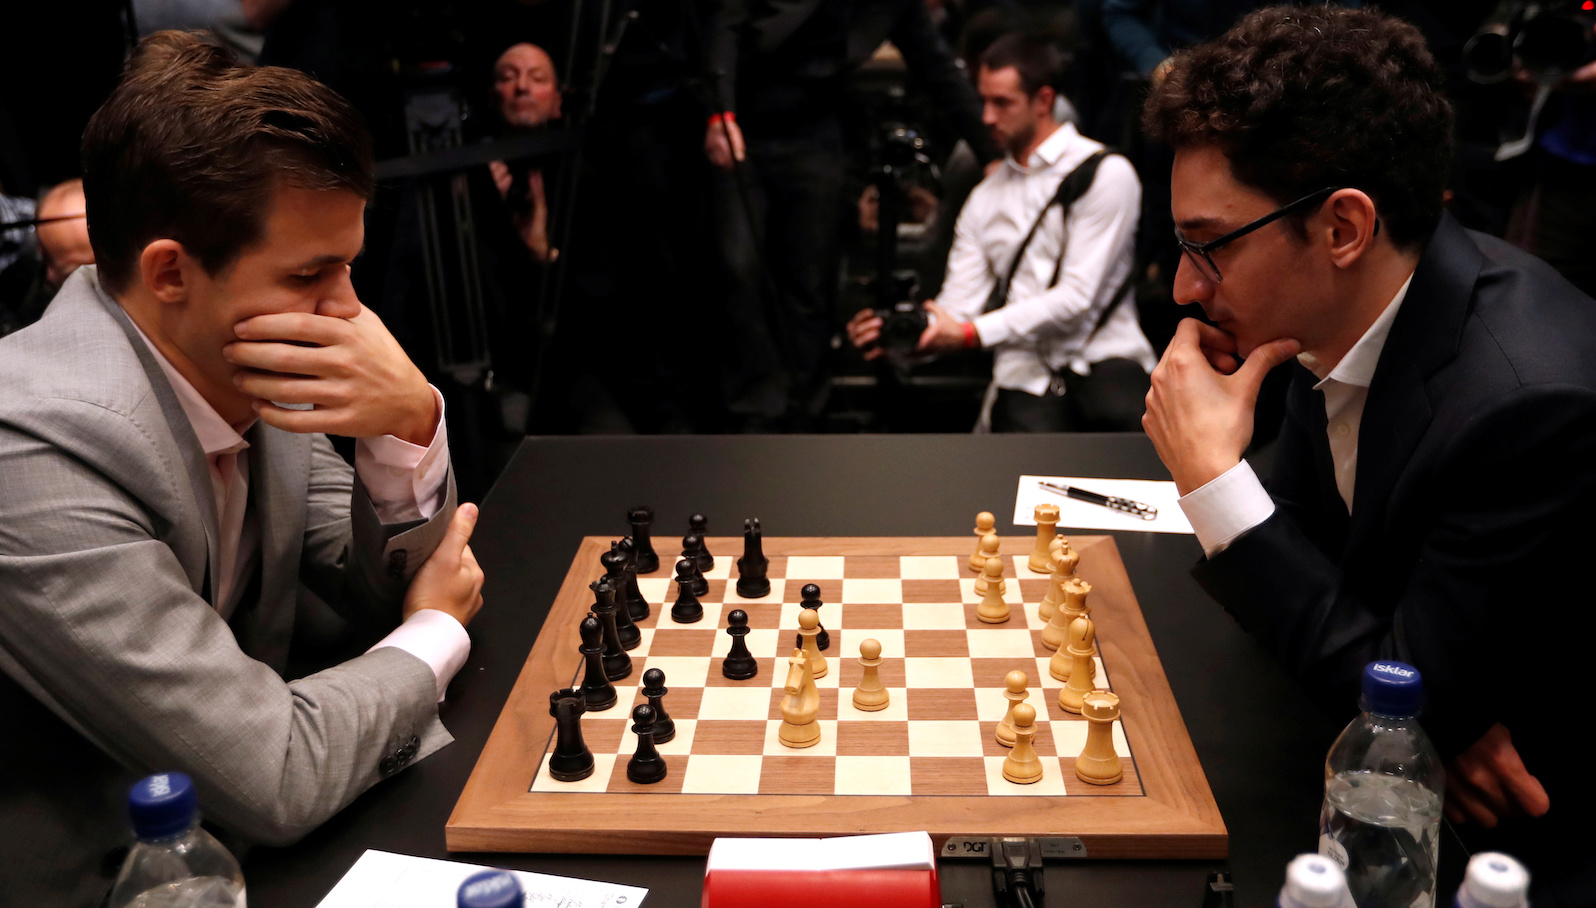 Chess: What will happen on final day of Magnus Carlsen vs